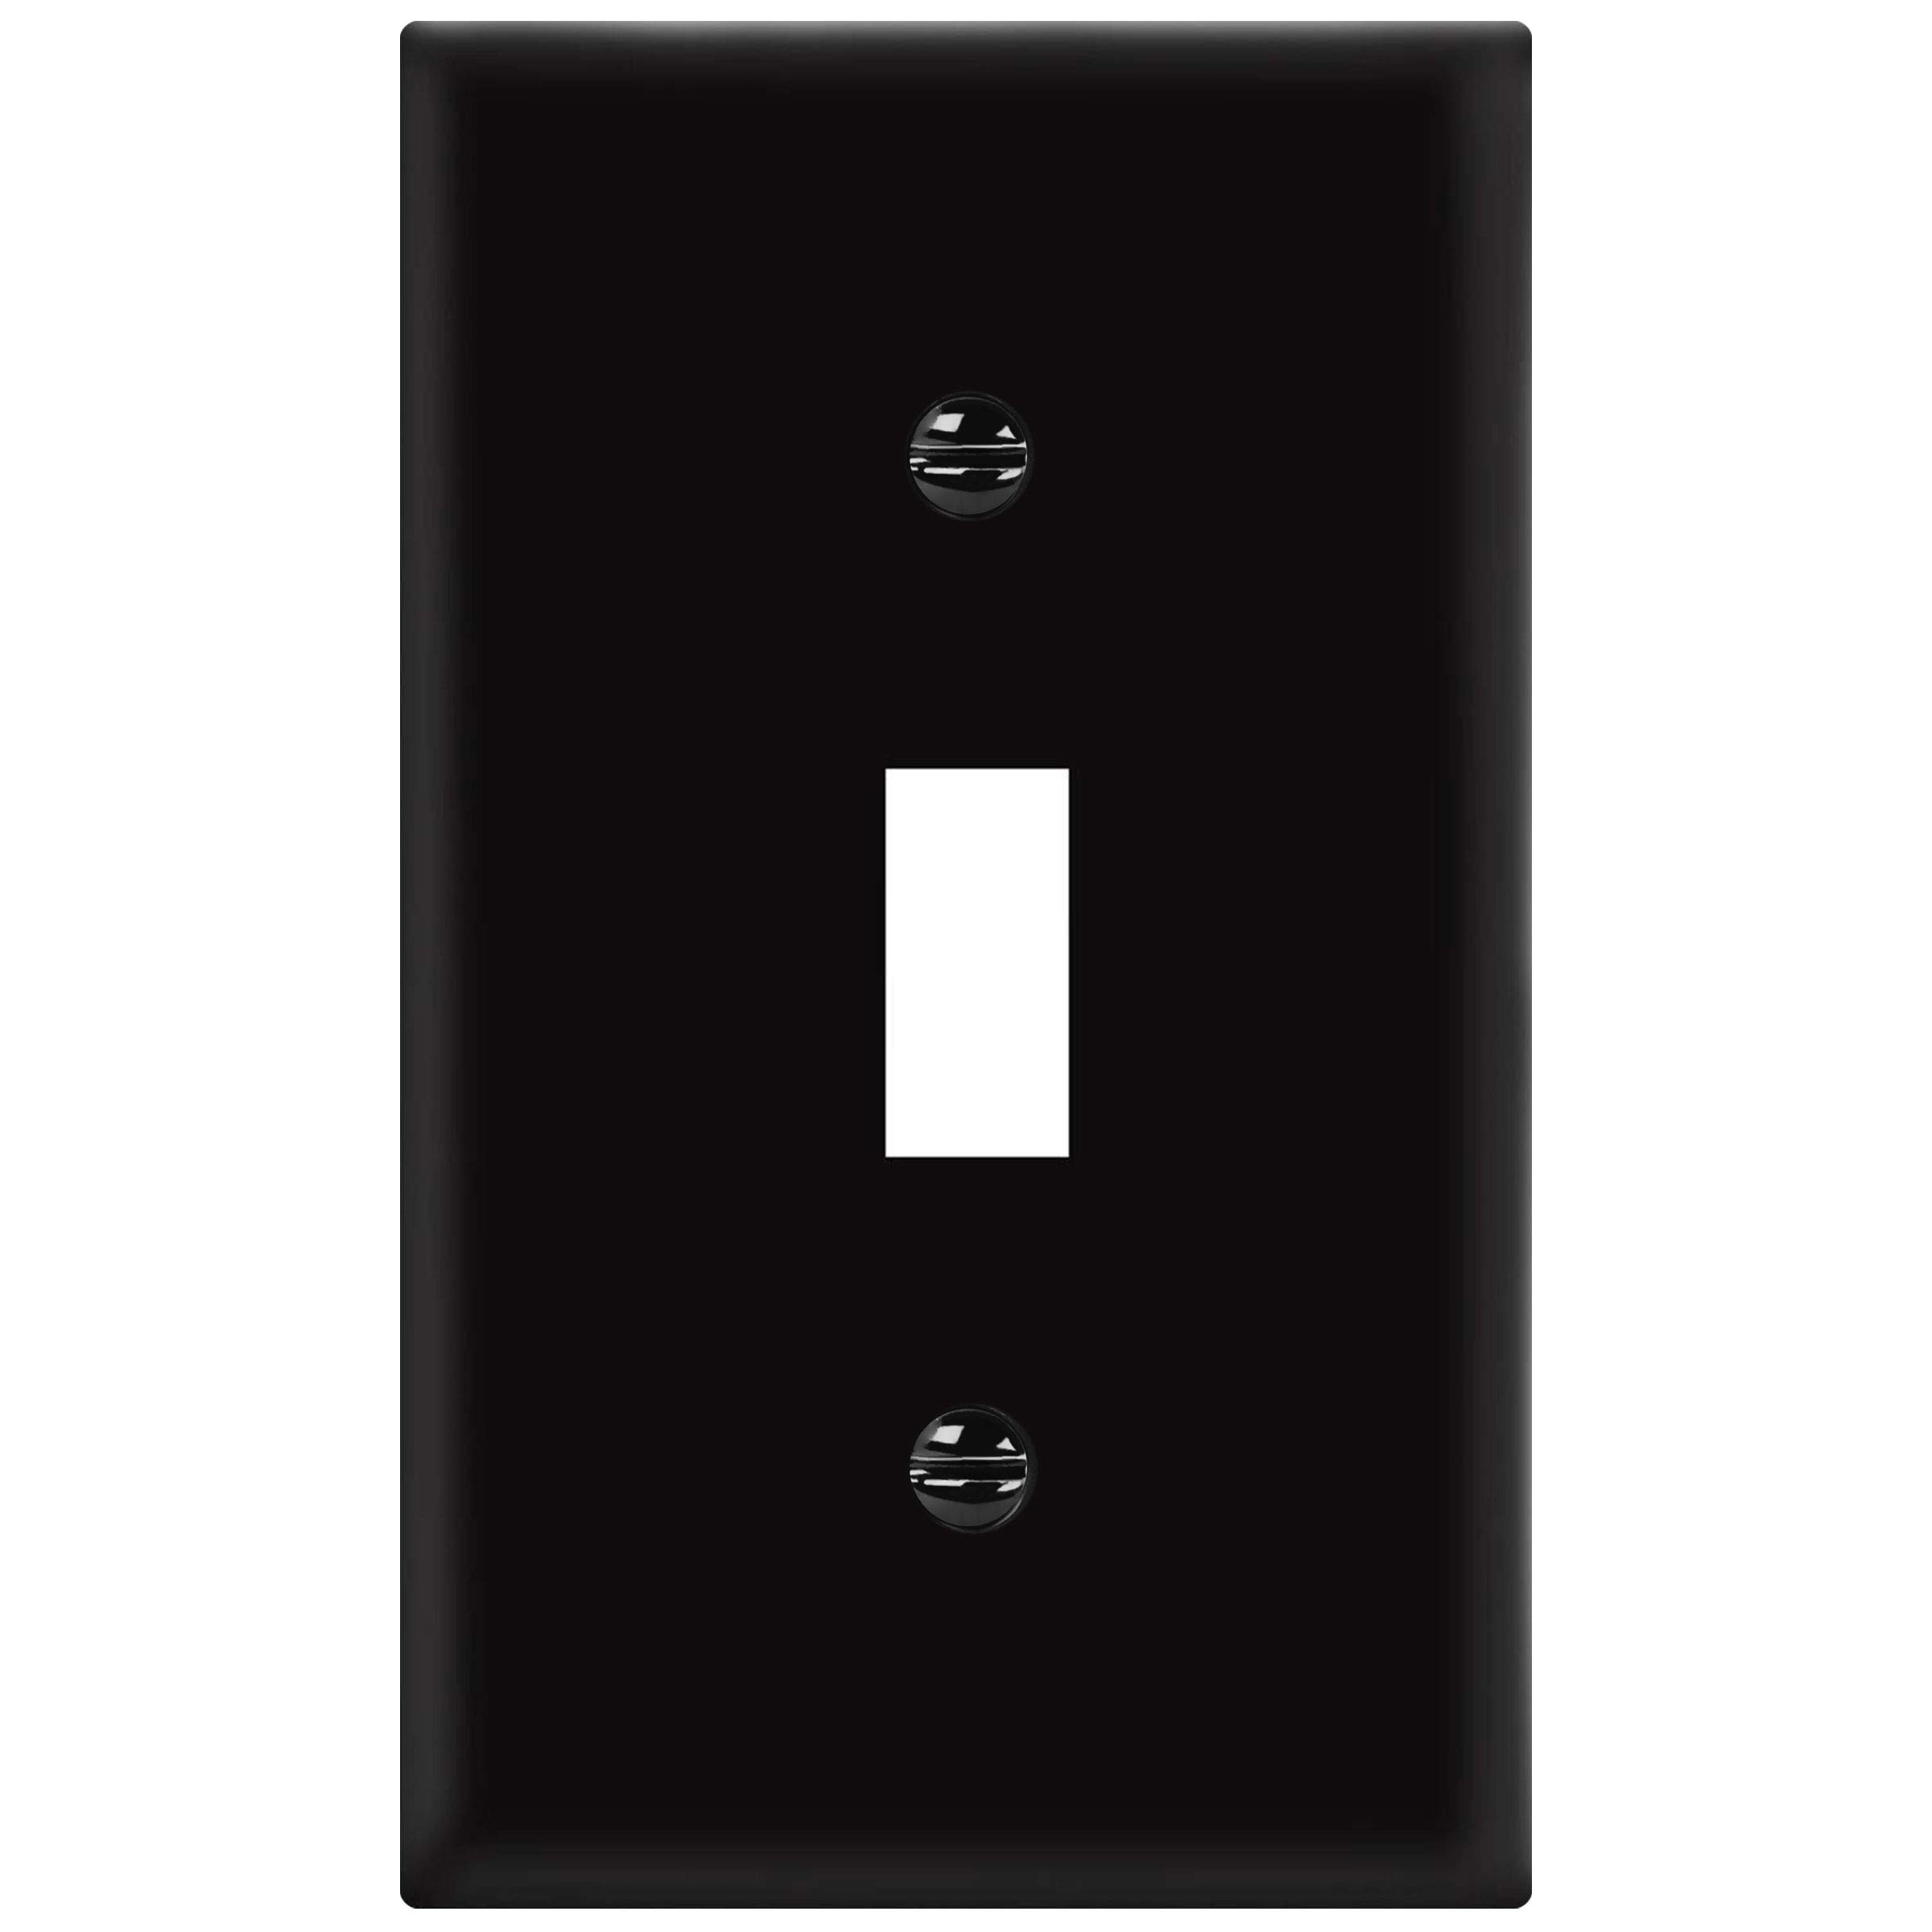 ENERLITES 8811-BK Toggle Wall Plate, Standard Size 1-Gang, Polycarbonate Thermoplastic, Black by ENERLITES